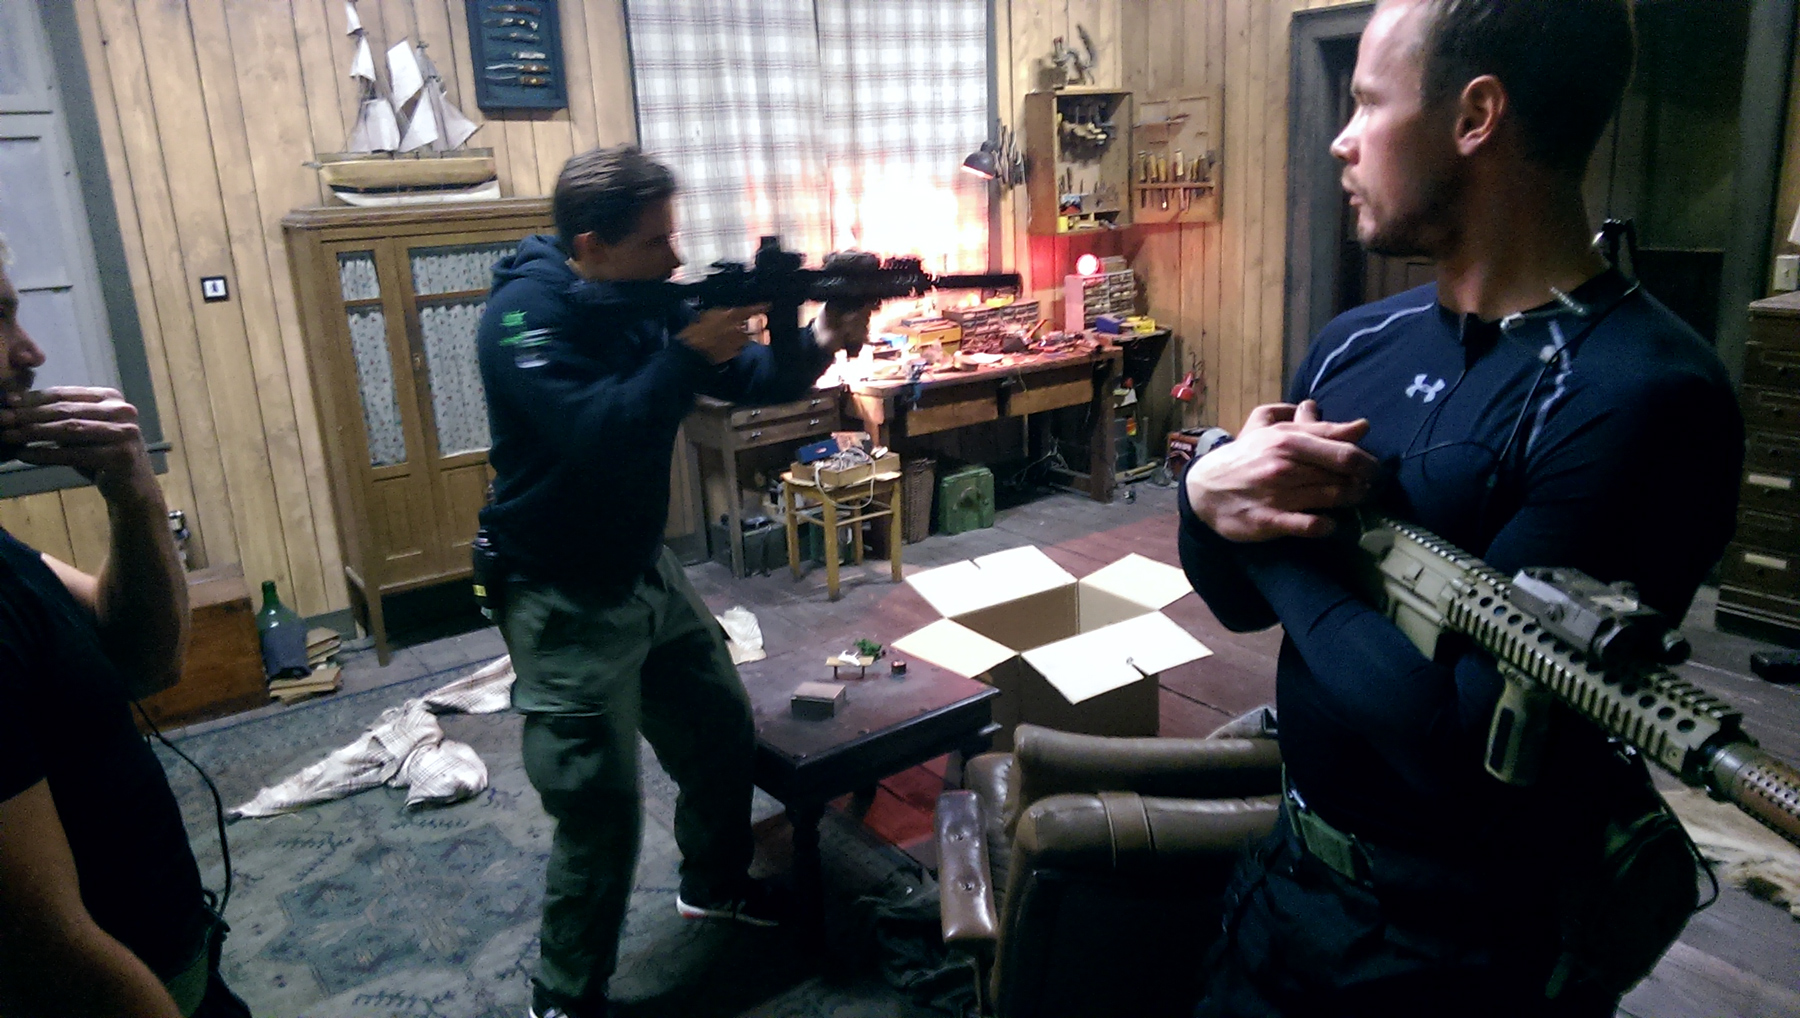 Martin Goeres, MG Action, Special Forces, FBI HRT, Room Clearing, Demons